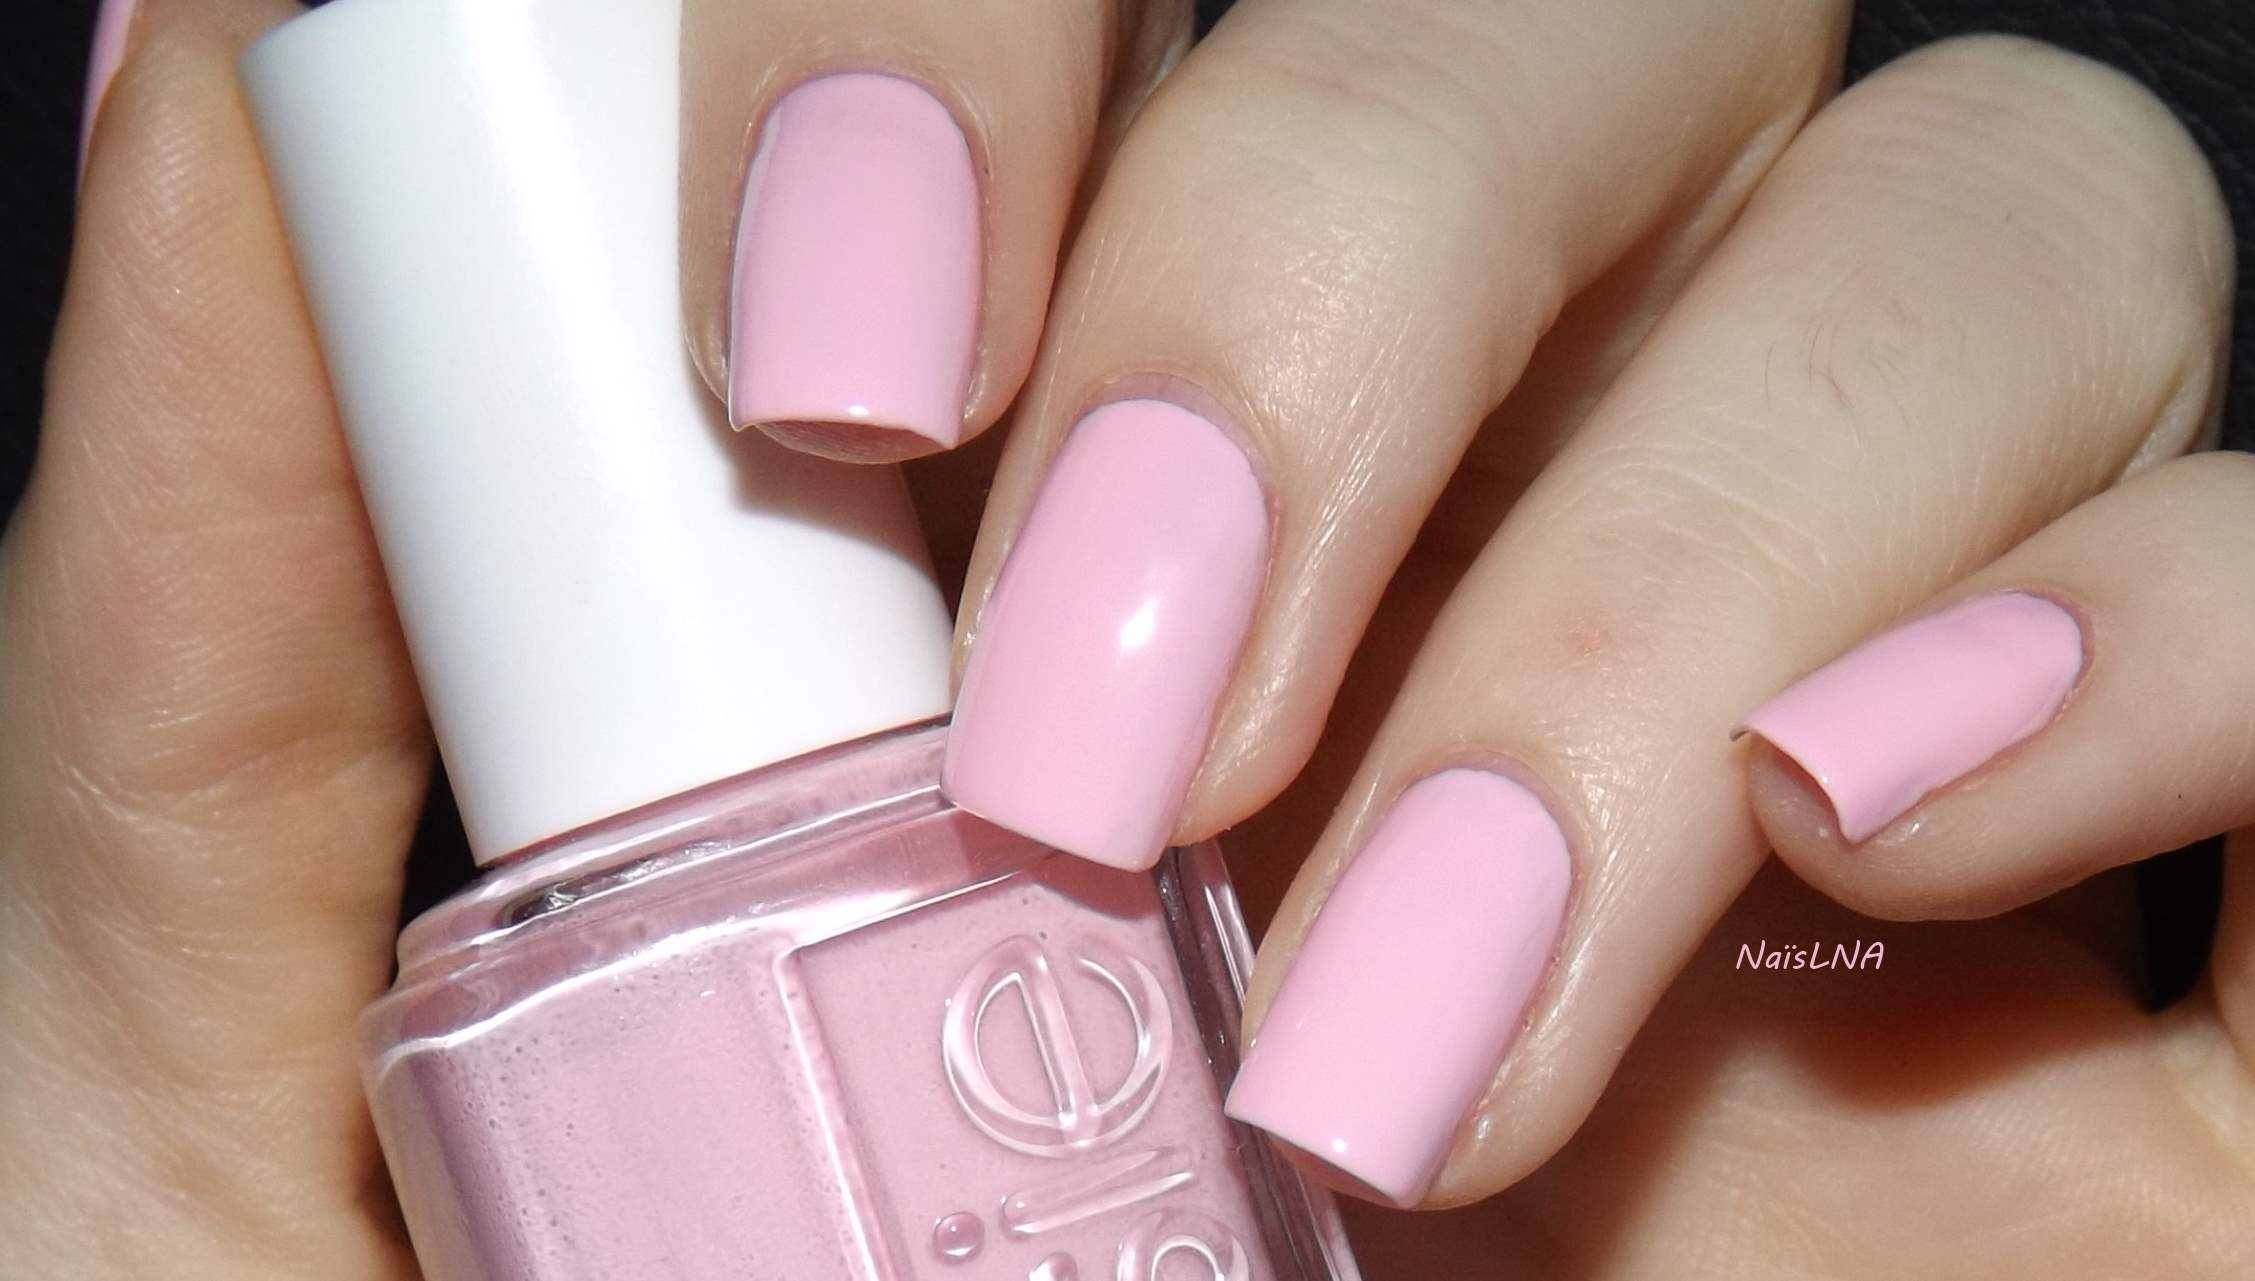 Octobre rose na s nails and co - Faux ongles rose pale ...